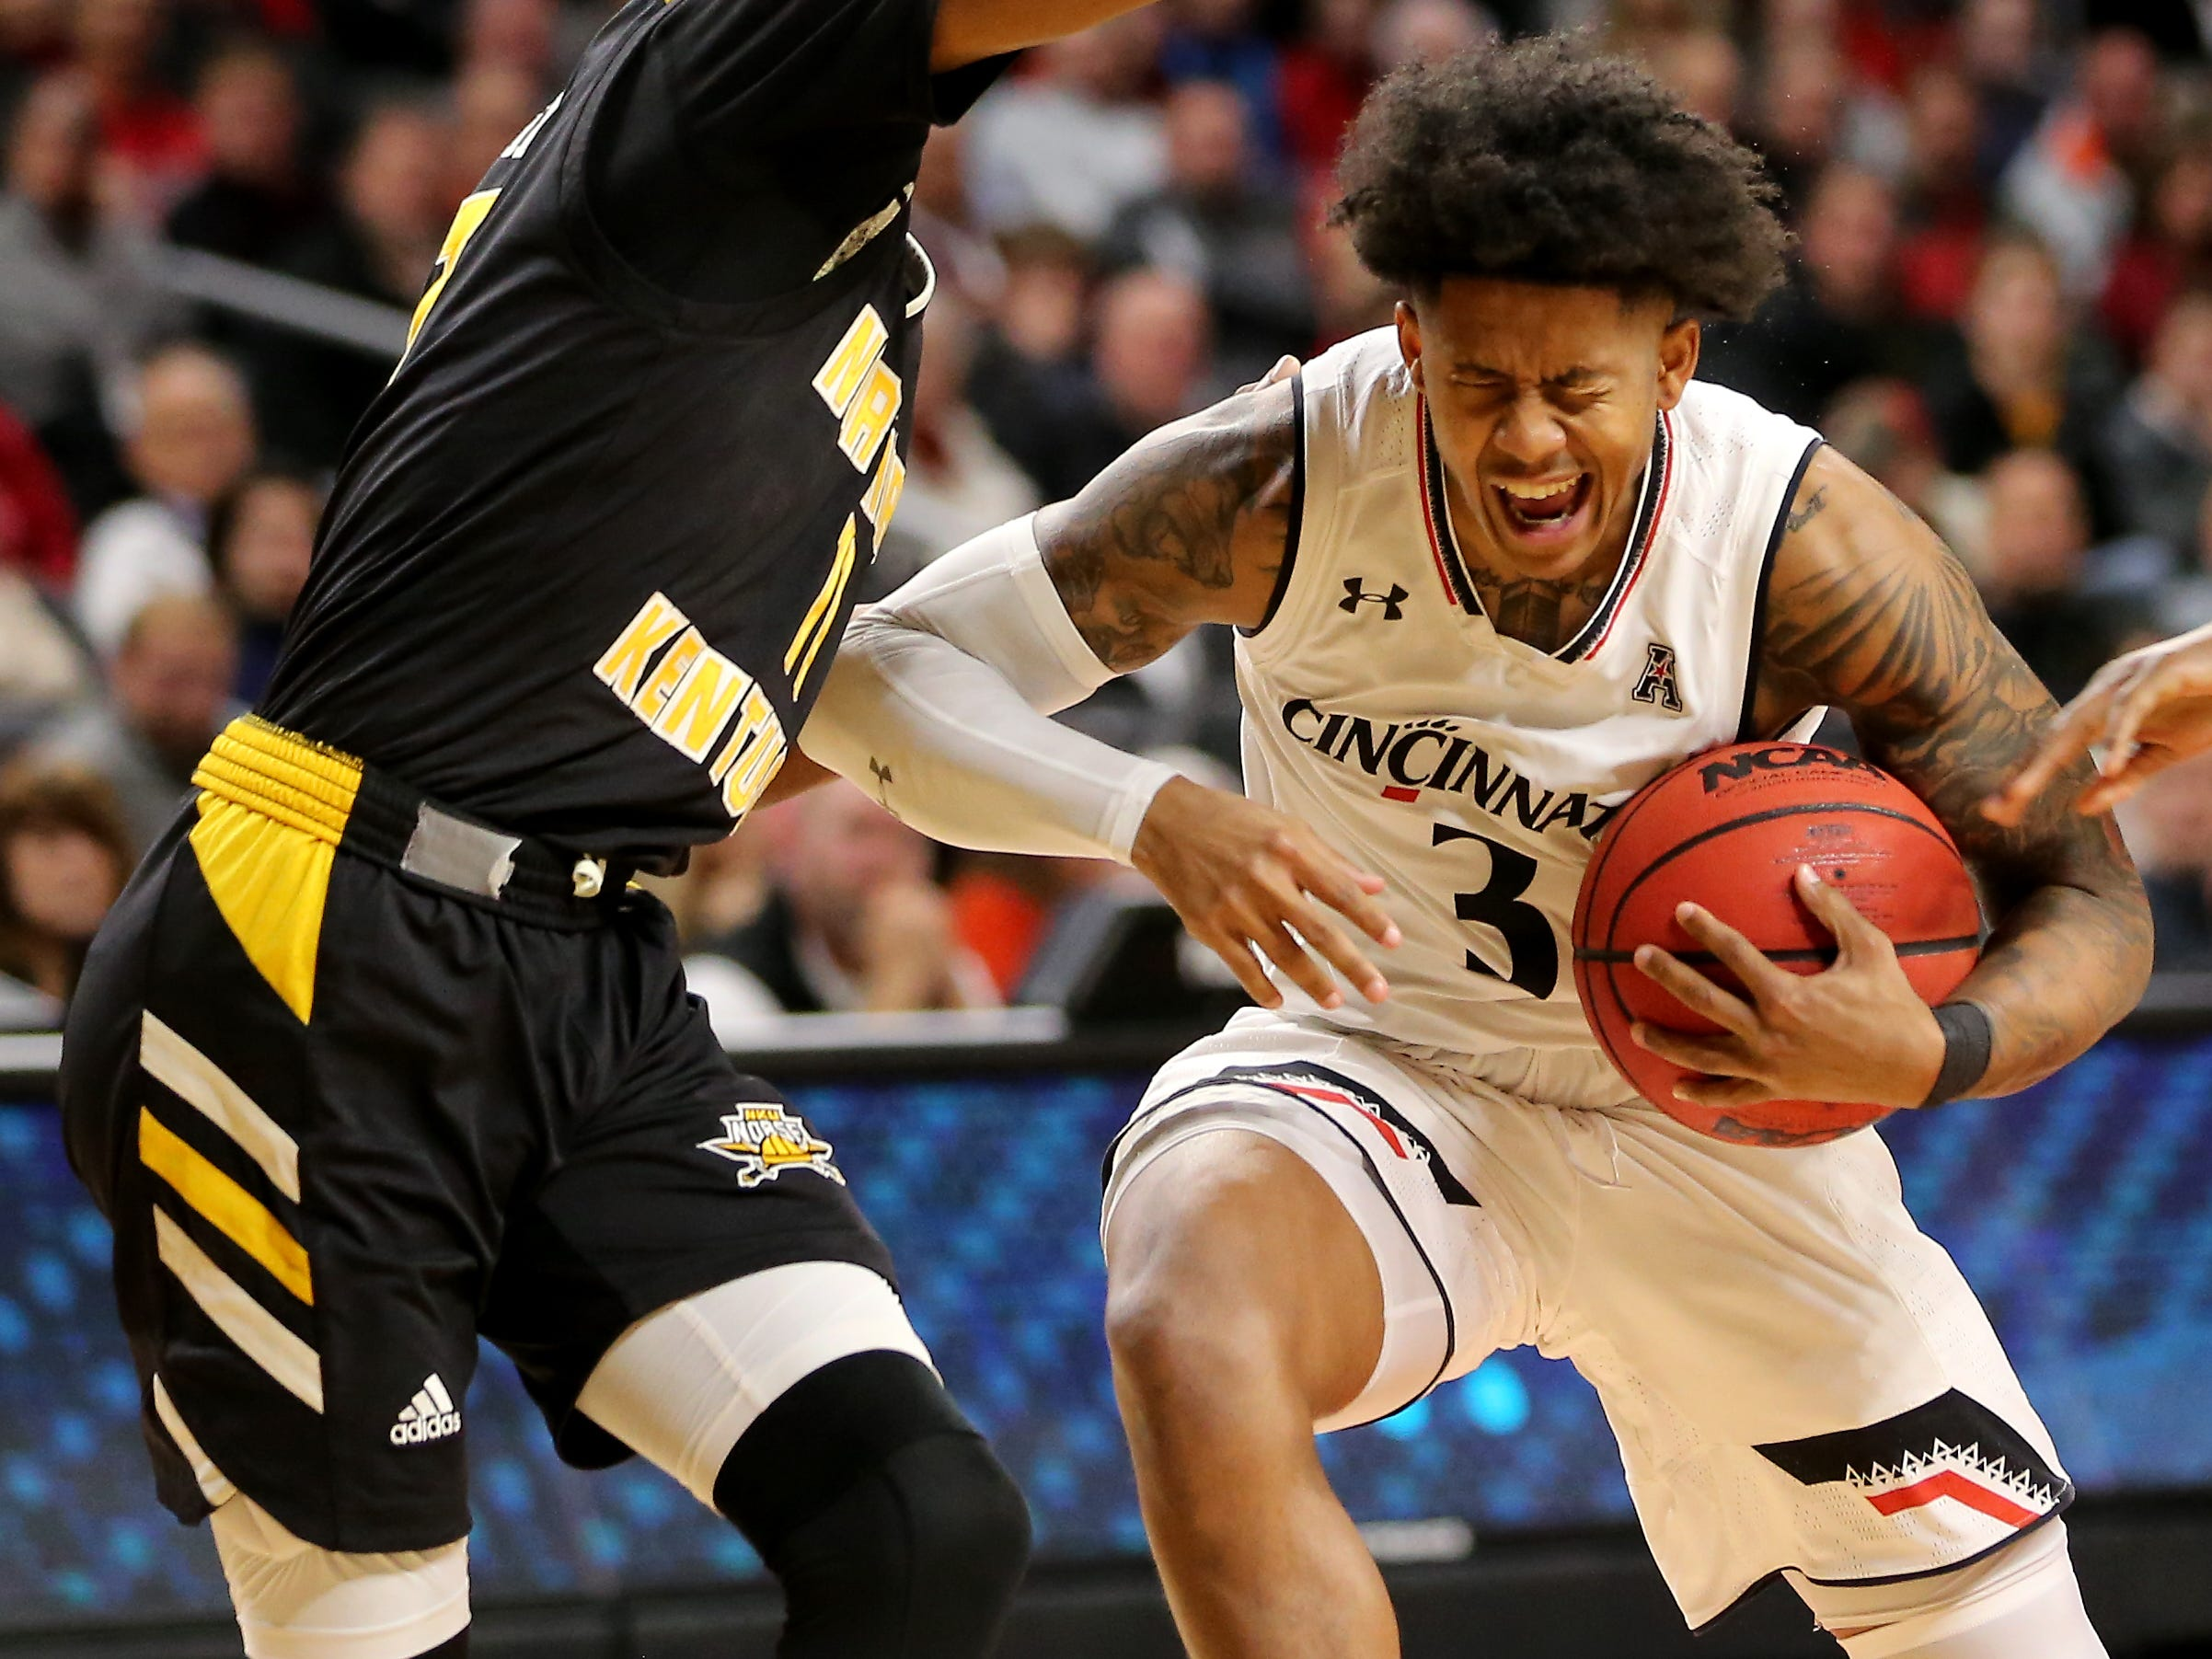 Cincinnati Bearcats guard Justin Jenifer (3) reacts after being fouled on his way to the basket in the second half of an NCAA college basketball game against the Northern Kentucky Norse, Tuesday, Dec. 4, 2018, at Fifth Third Arena in Cincinnati.